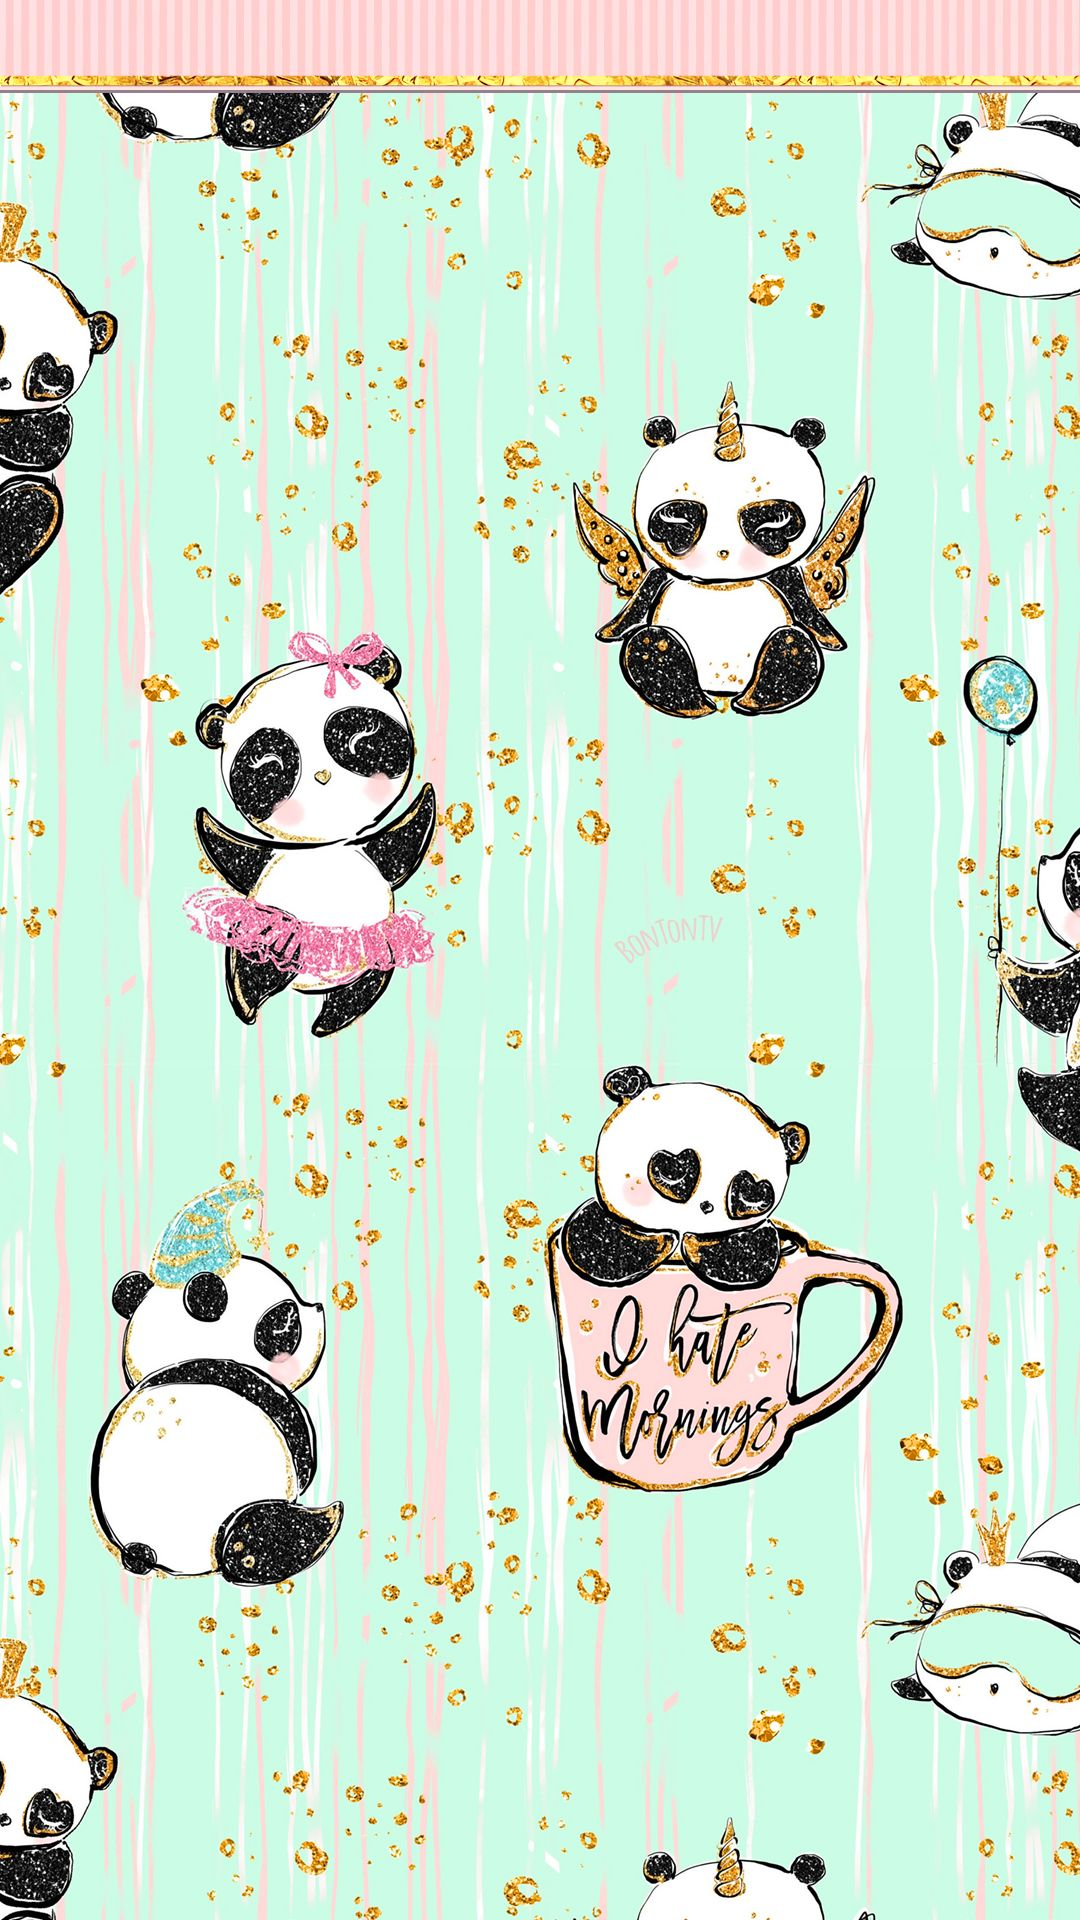 Pin By Jazzy Chiz On Wallpapers Panda Wallpapers Cute Wallpaper For Phone Cute Wallpapers